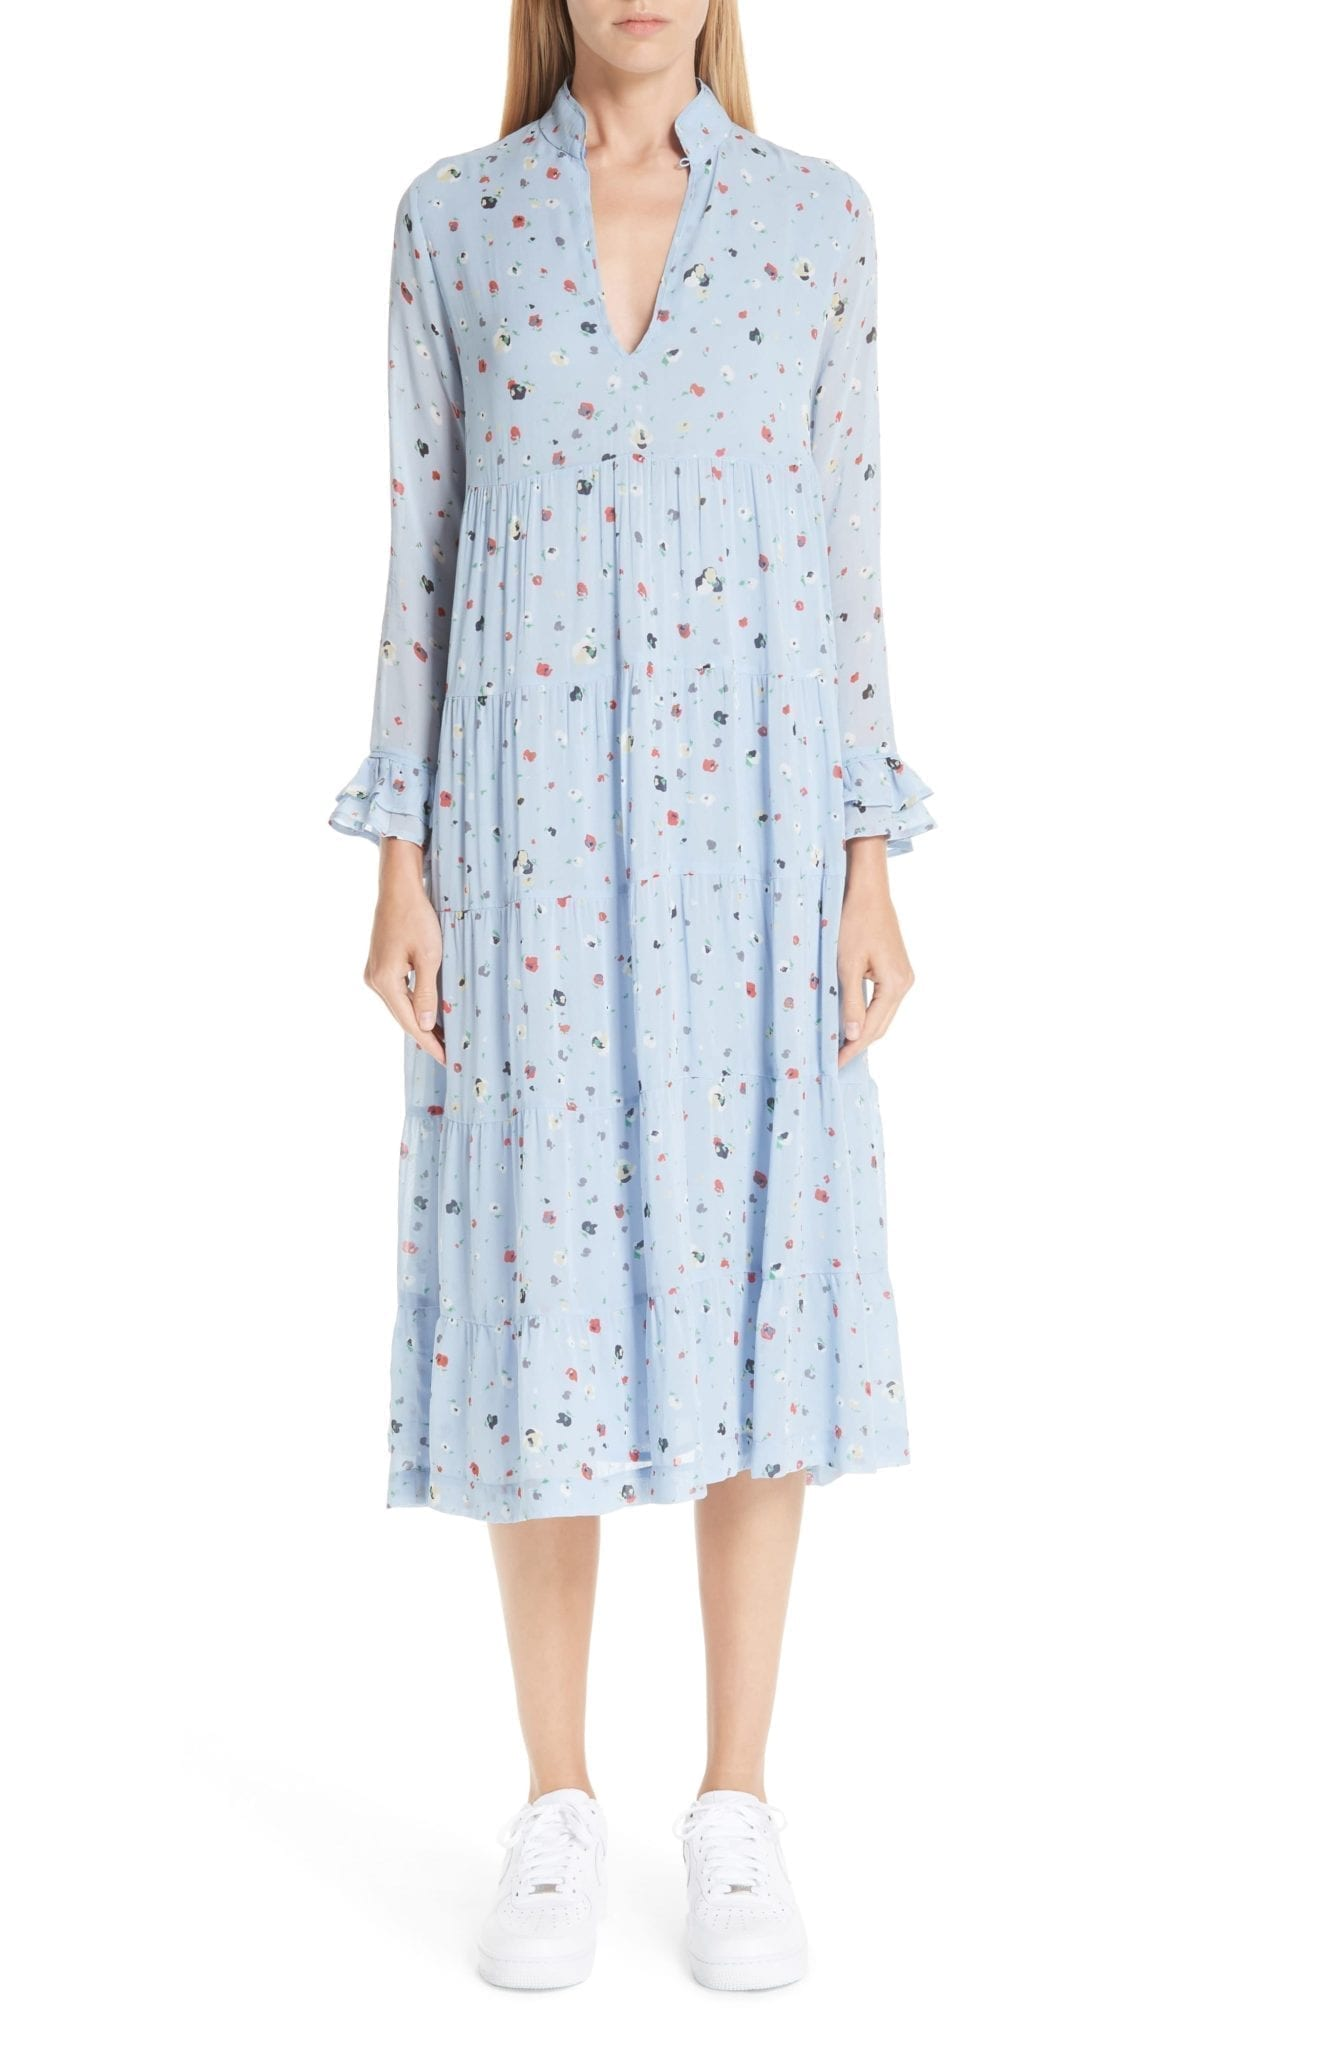 GANNI Shift Serenity Blue / Floral Printed Dress